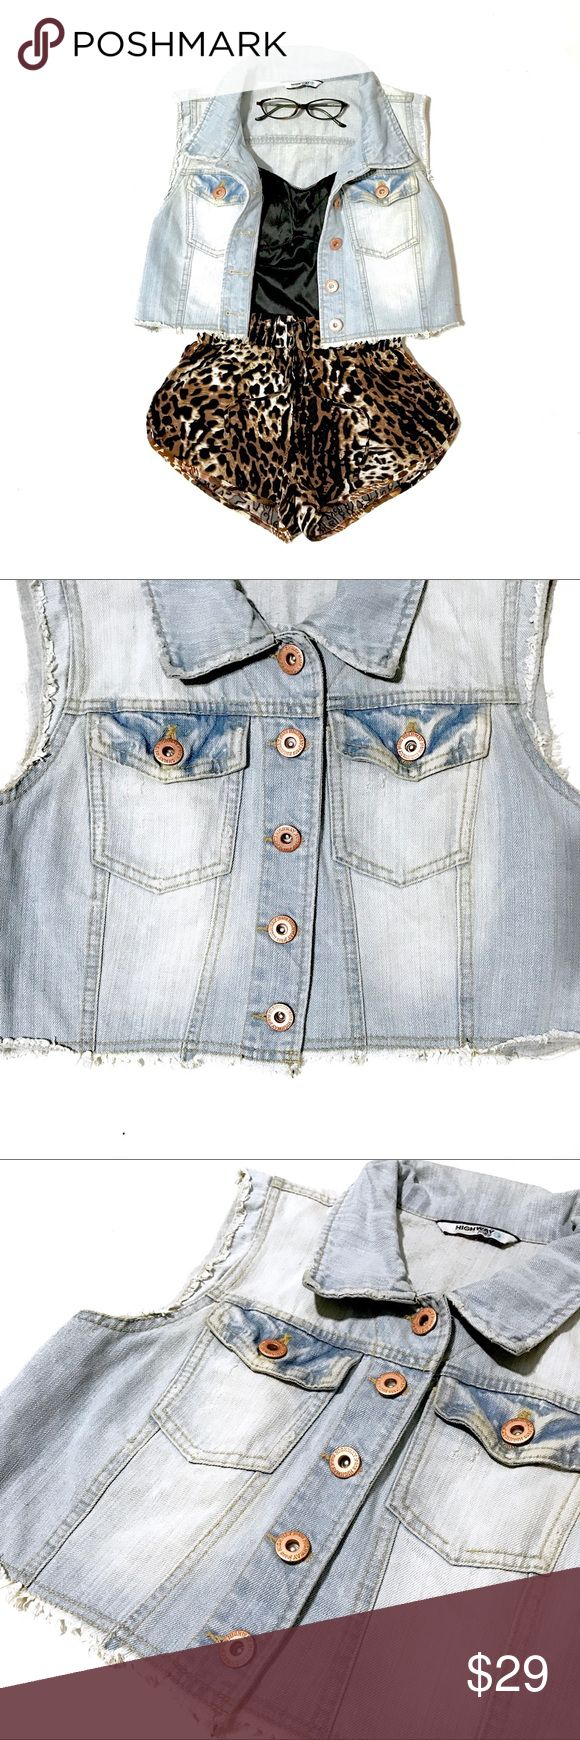 """Highway Jeans Distressed Light Denim Crop Vest By Highway Jeans, this light colored, washed-out denim vest has a trendy cropped & distressed design. Features rose gold color buttons, 2 front button closure pockets & gold stitching. Versatile staple item which can be used to accent an outfit or create a layered look. Size L. Fits a S loosely for an over-sized look, M is just right or a L fitted! B: 38"""", W: 36"""", L from center, under collar: 16"""". EUC, only """"flaws"""" are intentional for the…"""